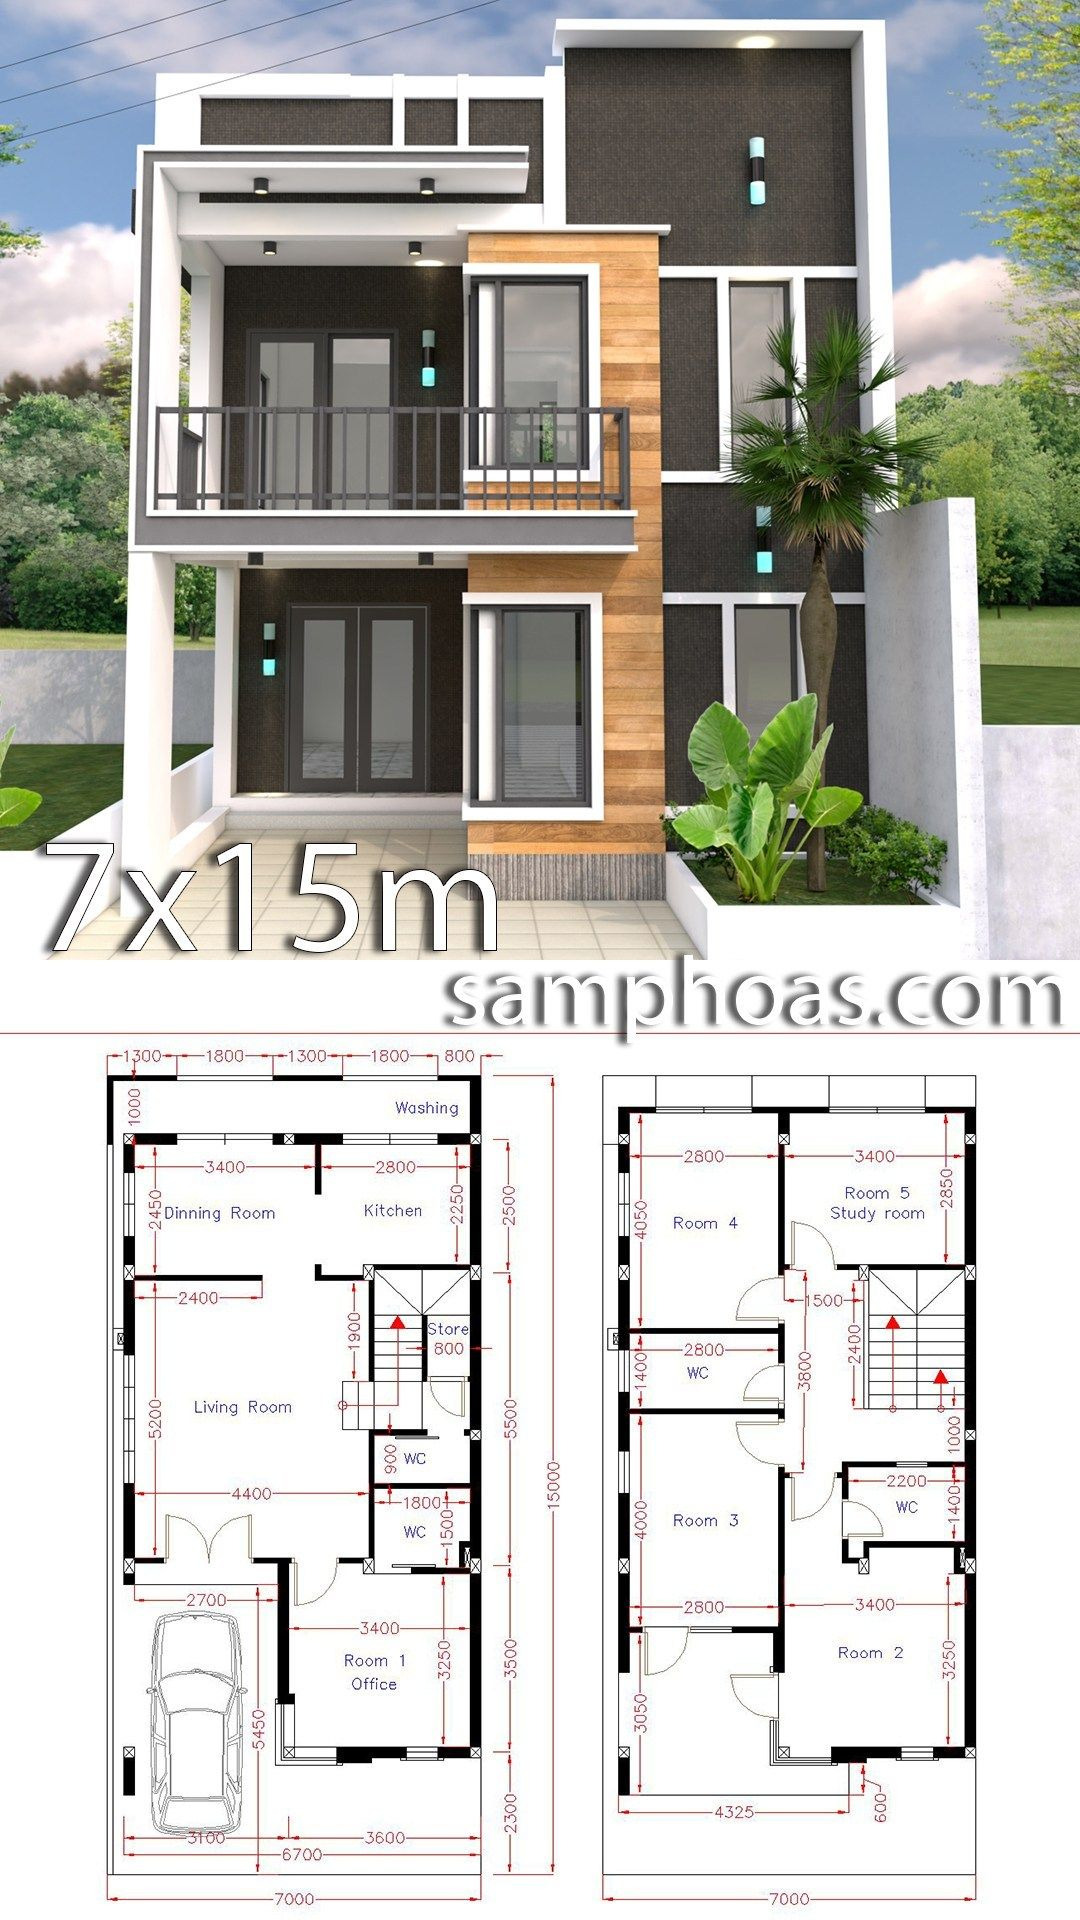 Modern Home Design Plans Awesome Home Design Plan 7x15m with 5 Bedrooms Samphoas Plansearch